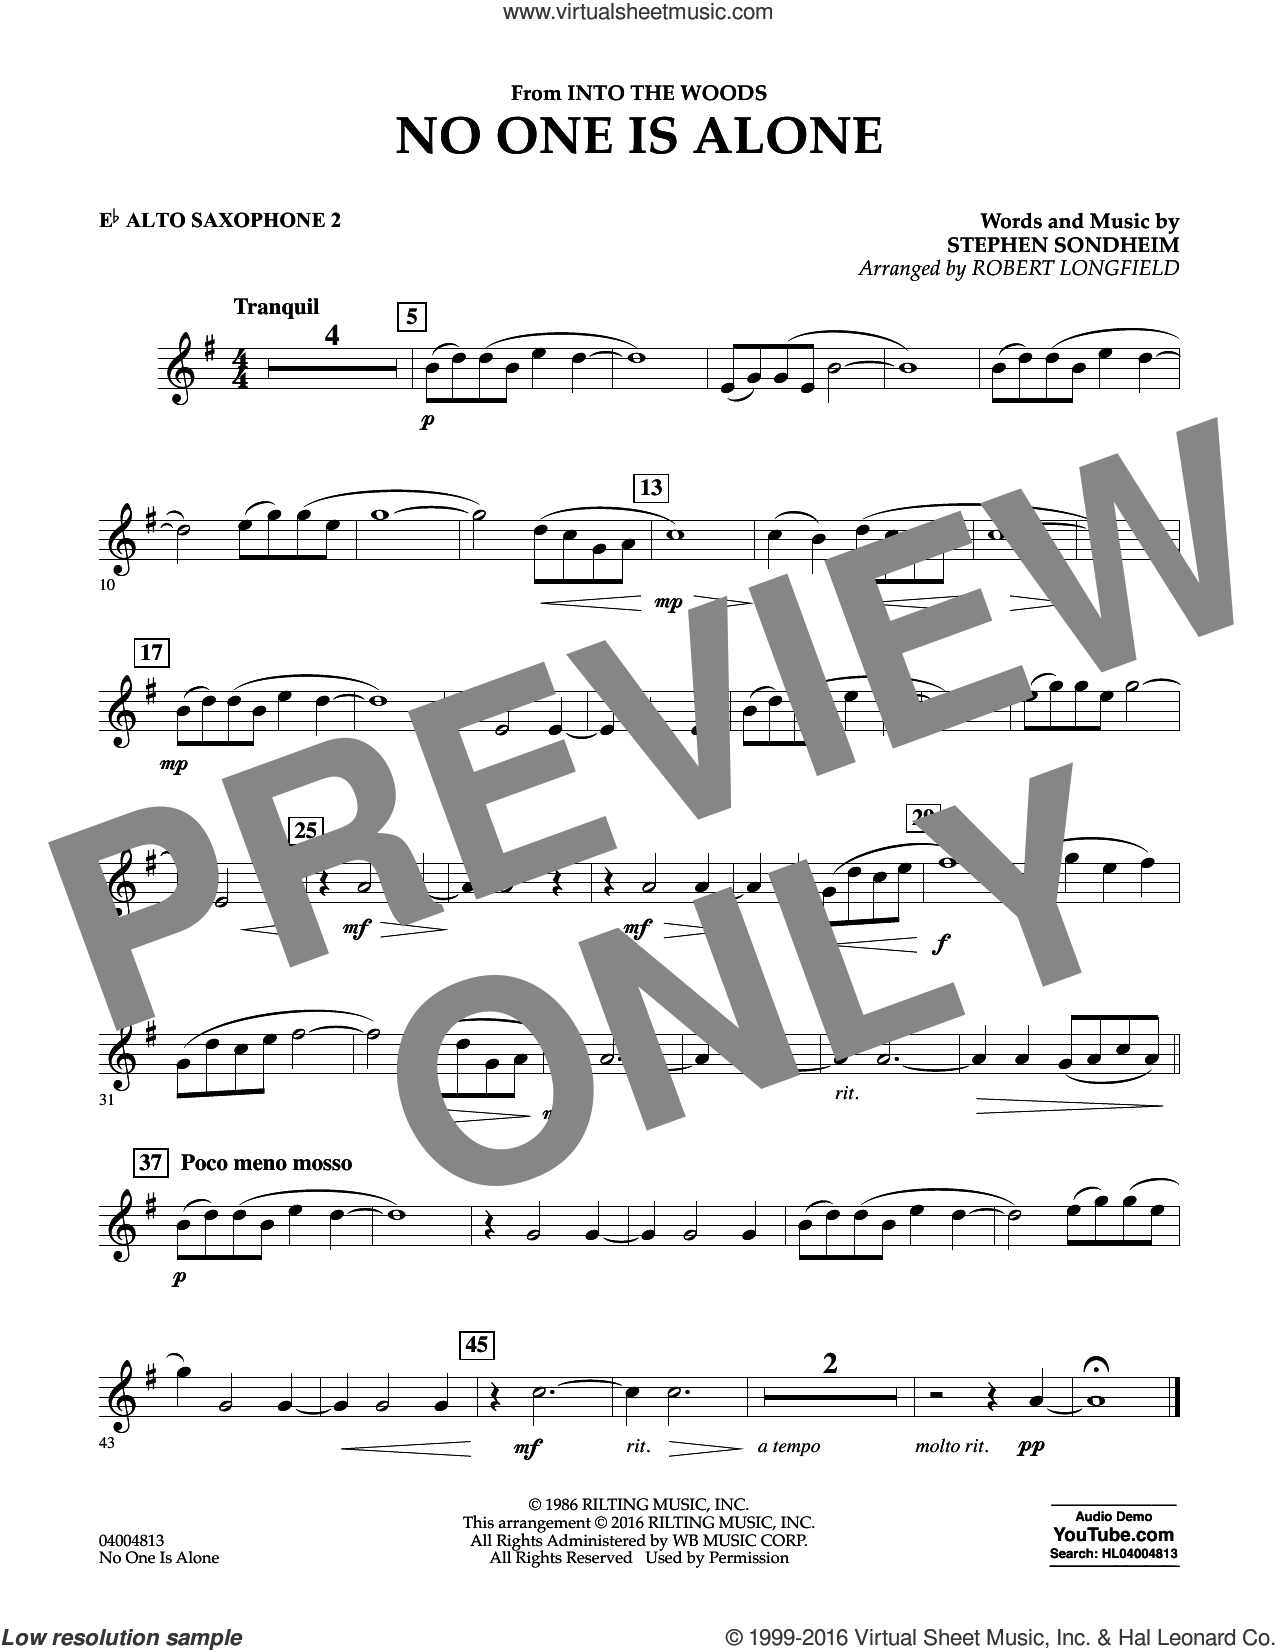 No One Is Alone sheet music for concert band (Eb alto saxophone 2) by Stephen Sondheim